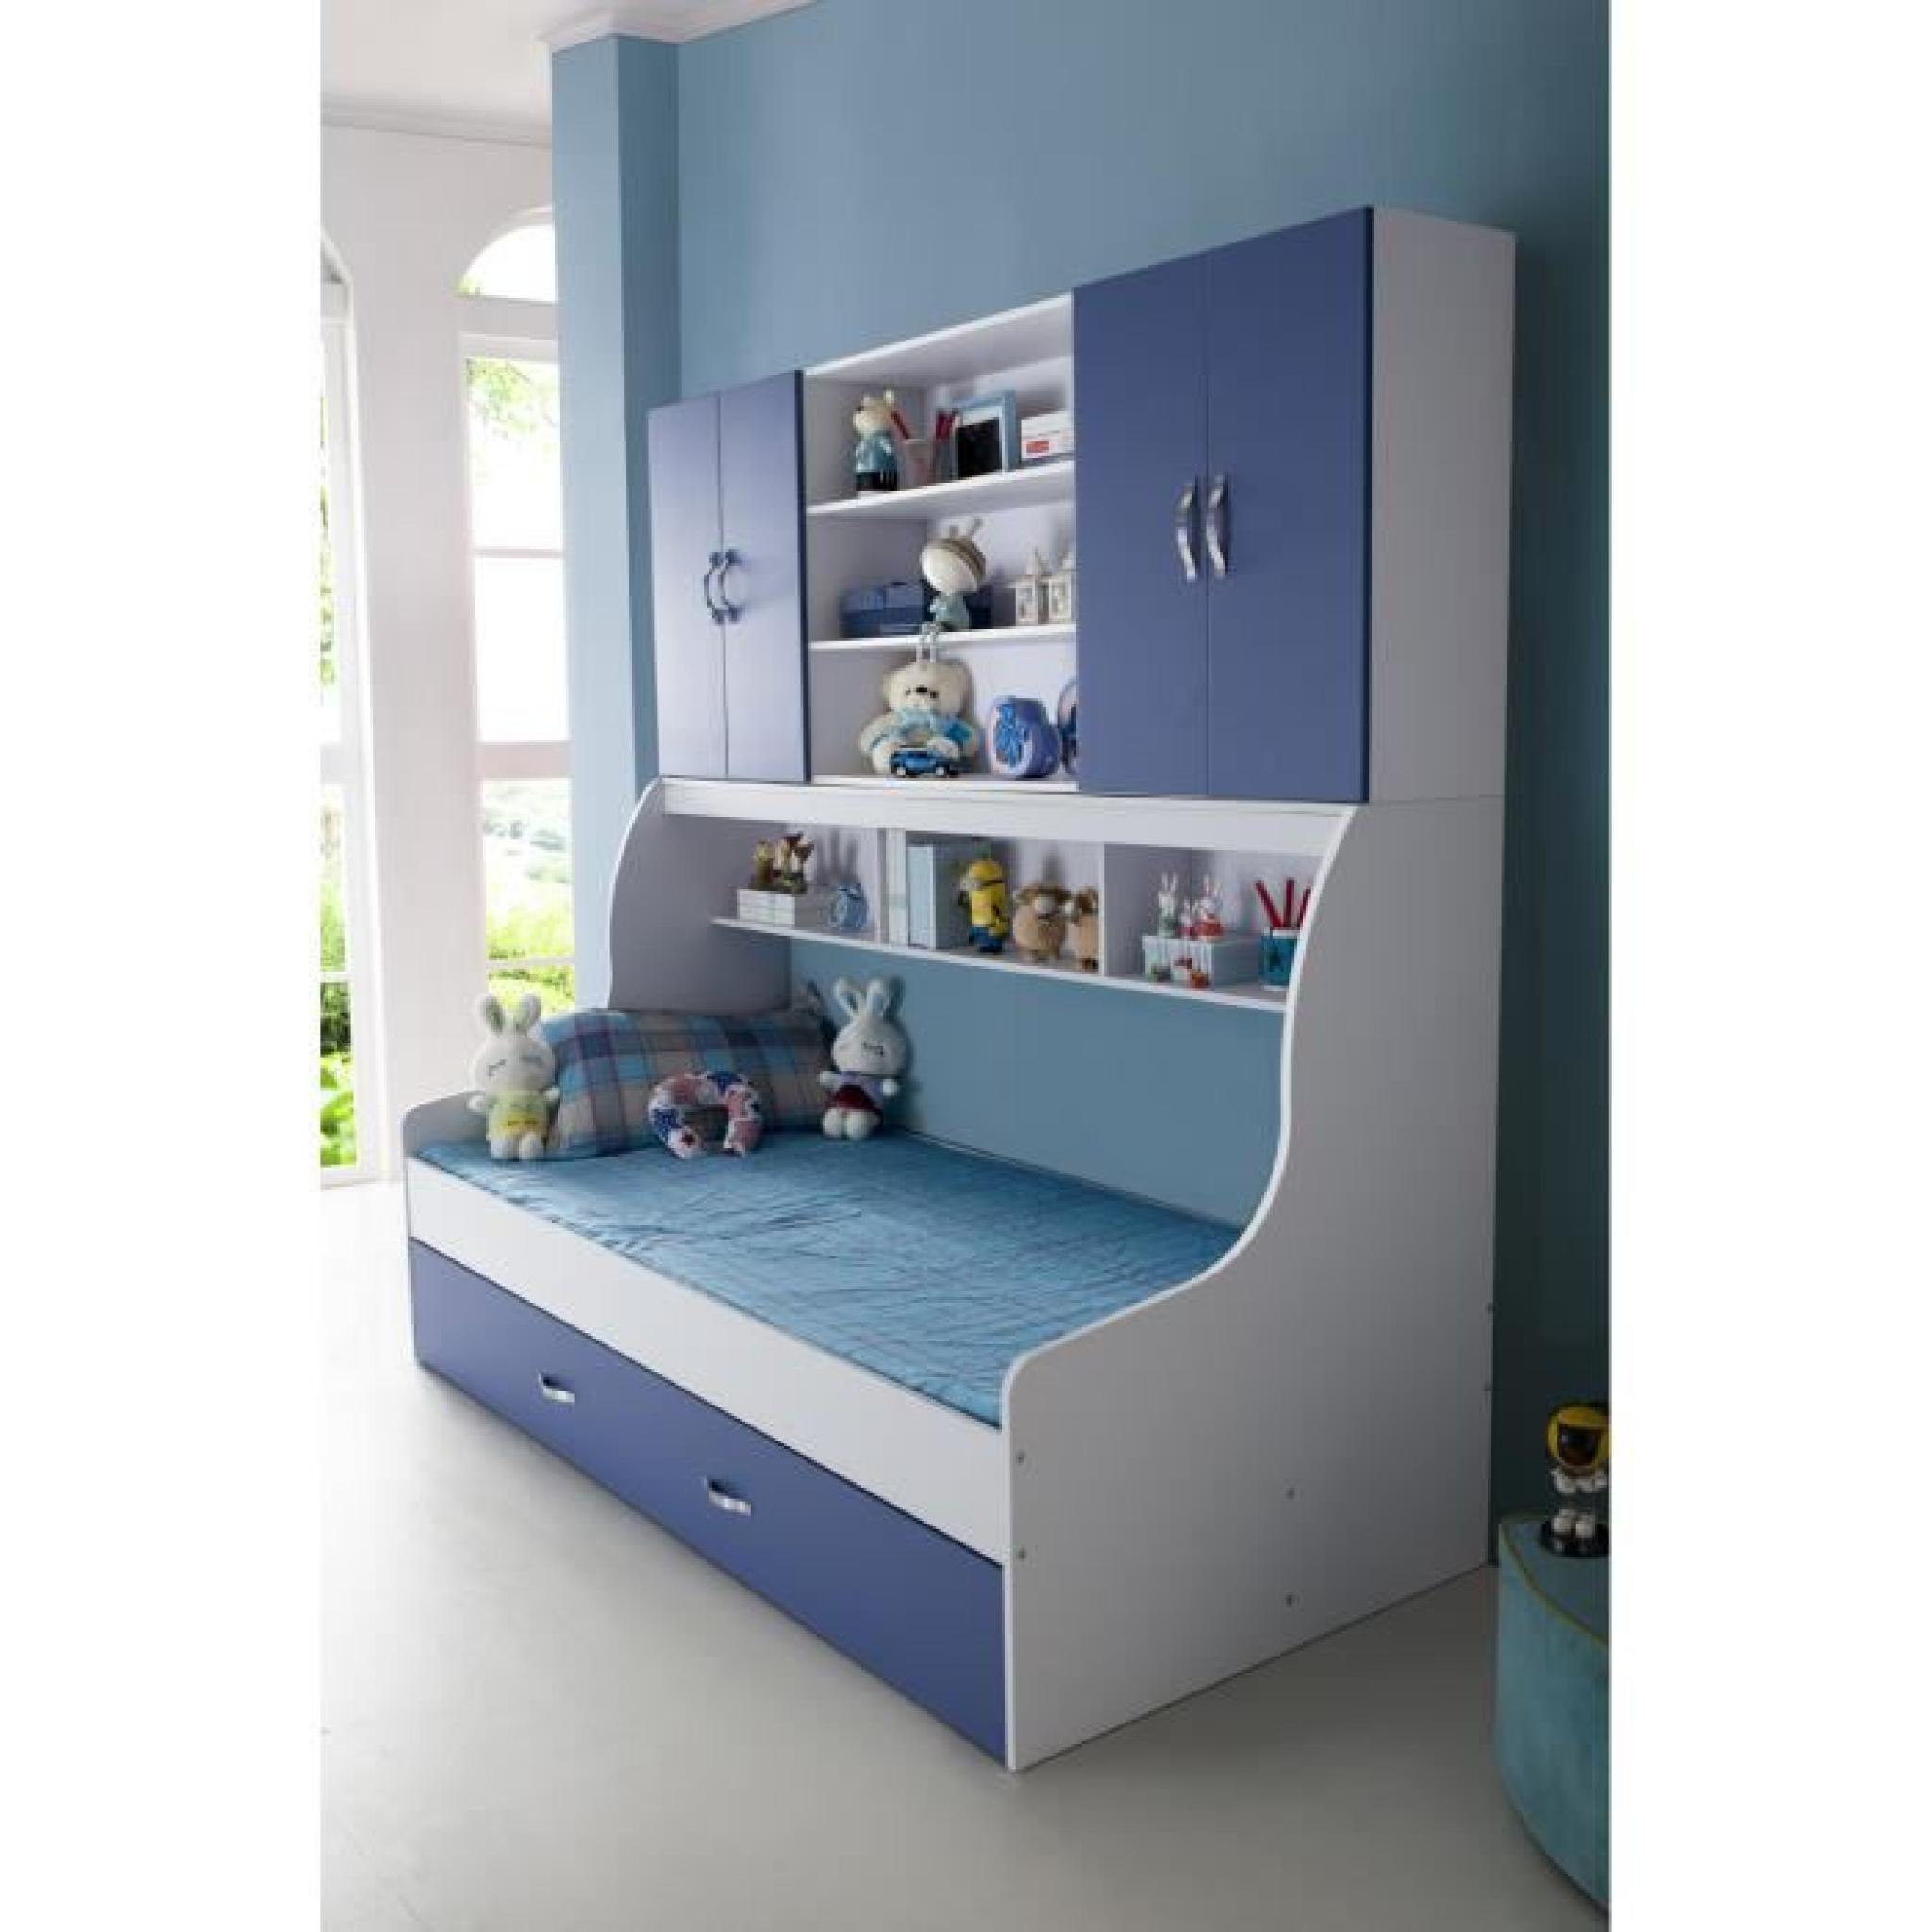 lit enfant bleu 90x200 avec tiroir et rangement mural. Black Bedroom Furniture Sets. Home Design Ideas